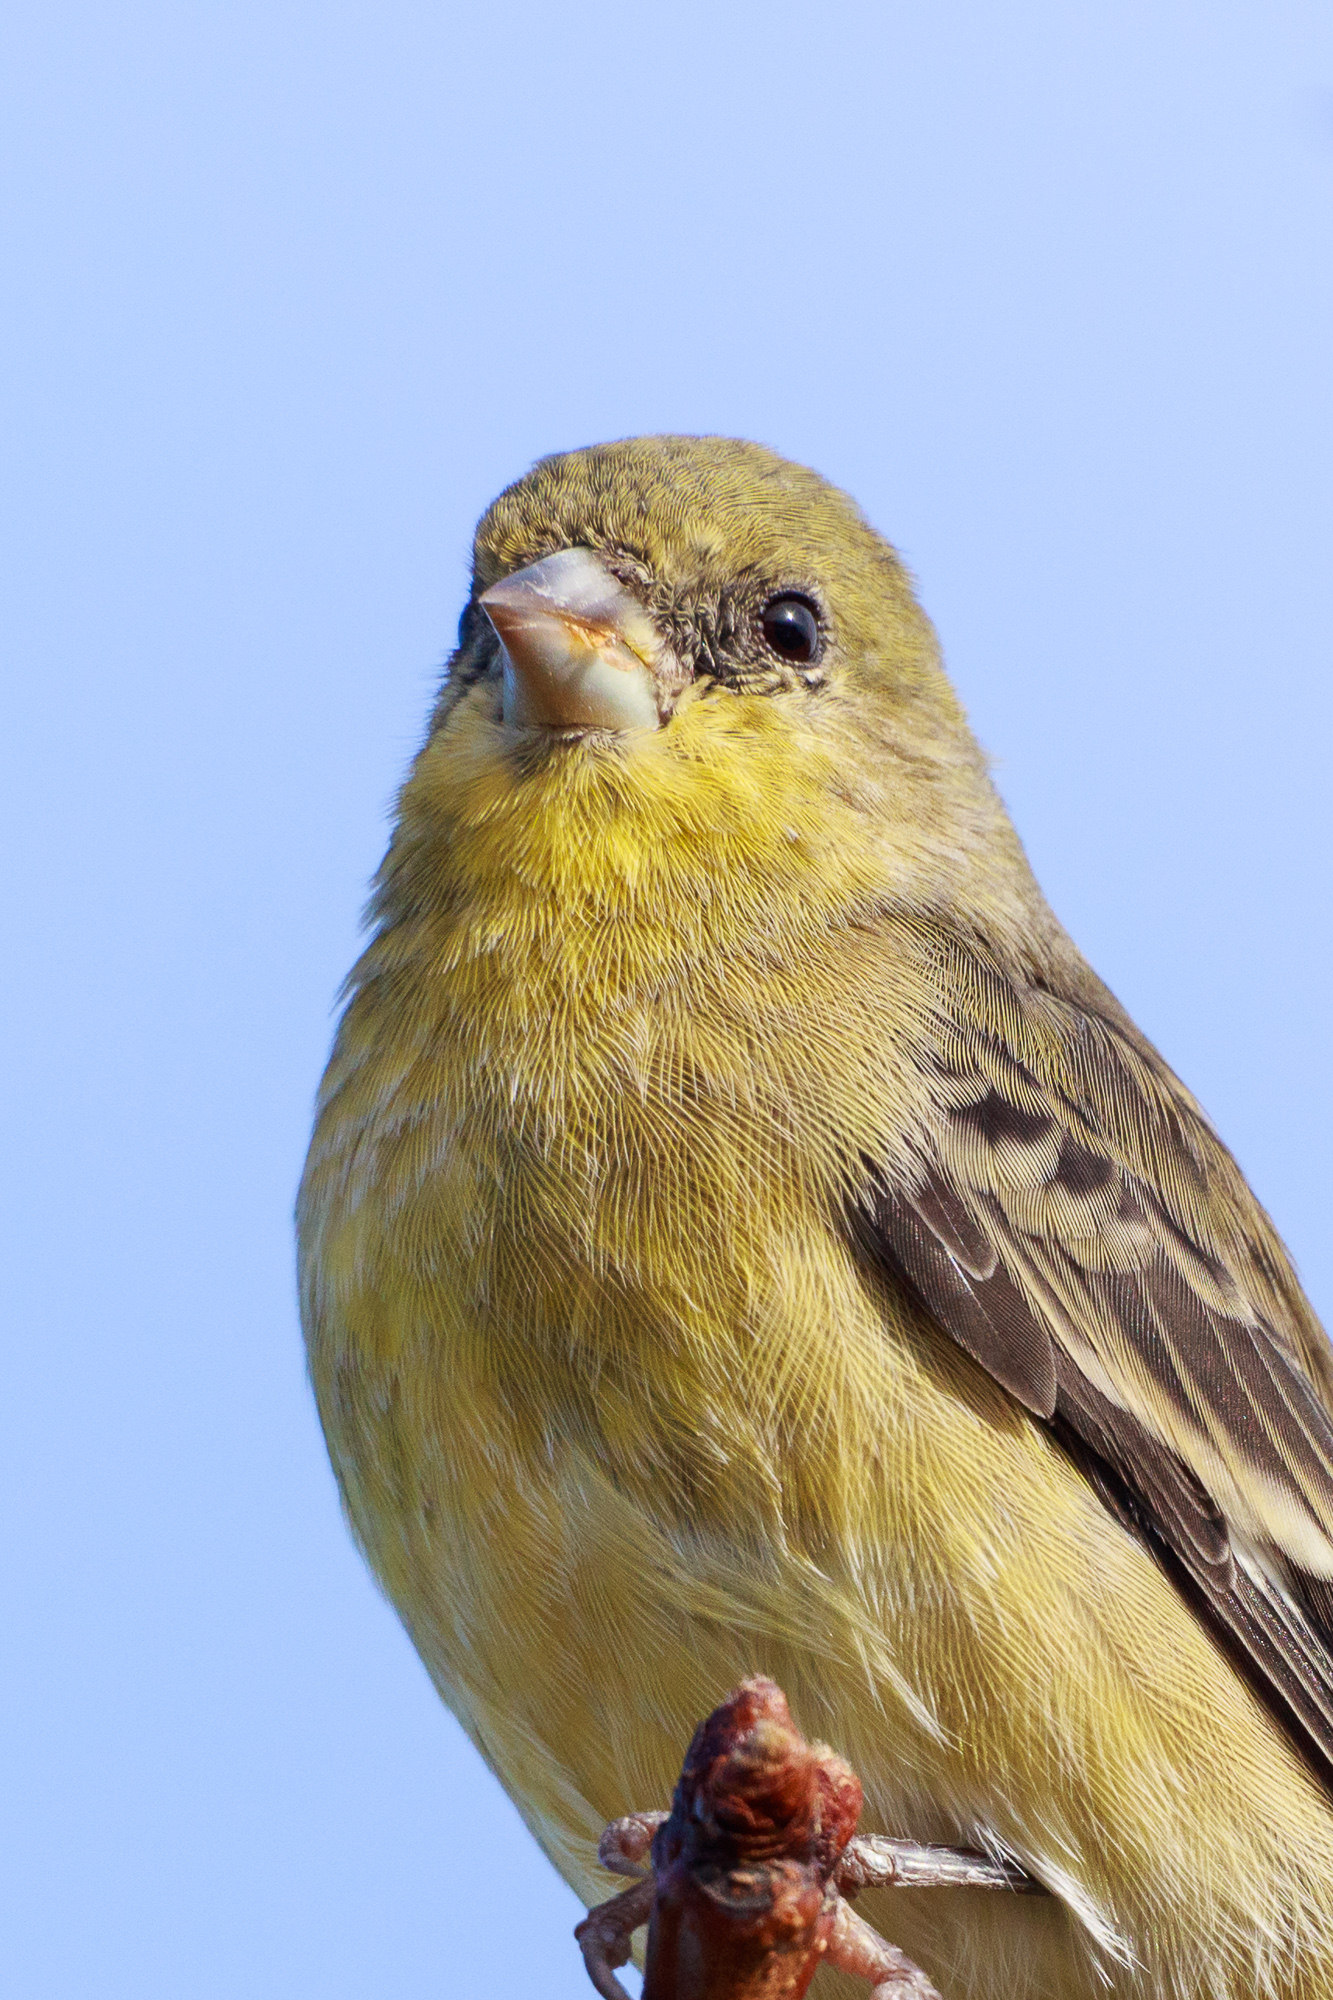 A lesser goldfinch perches on a narrow branch, Belmont, CA